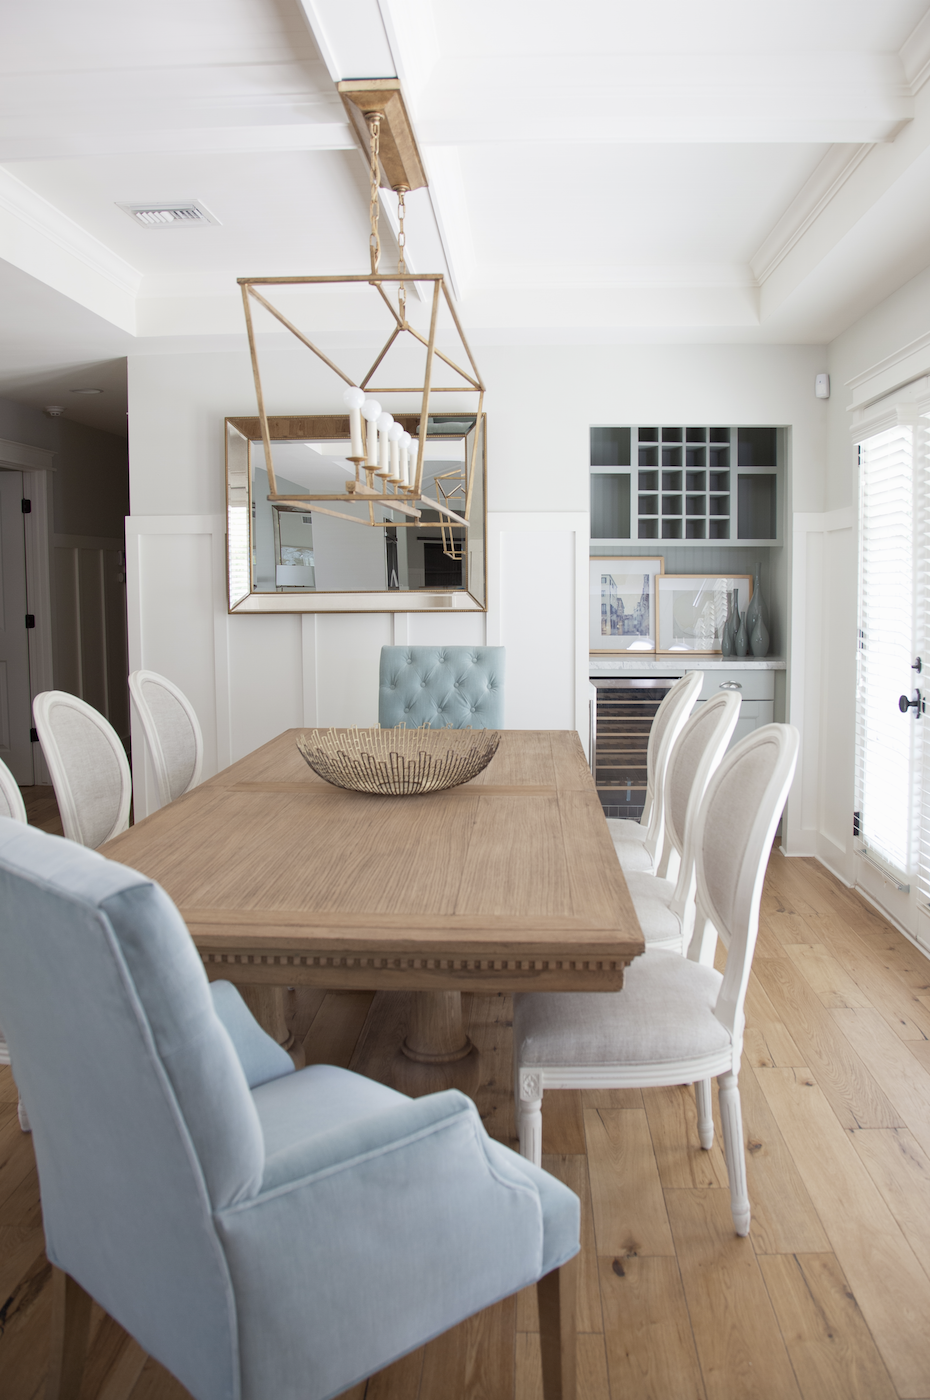 54th PL Residence Transitional Dining Room With Alternating Style Chairs  Upholstered In Neutral Colored Fabrics Accented